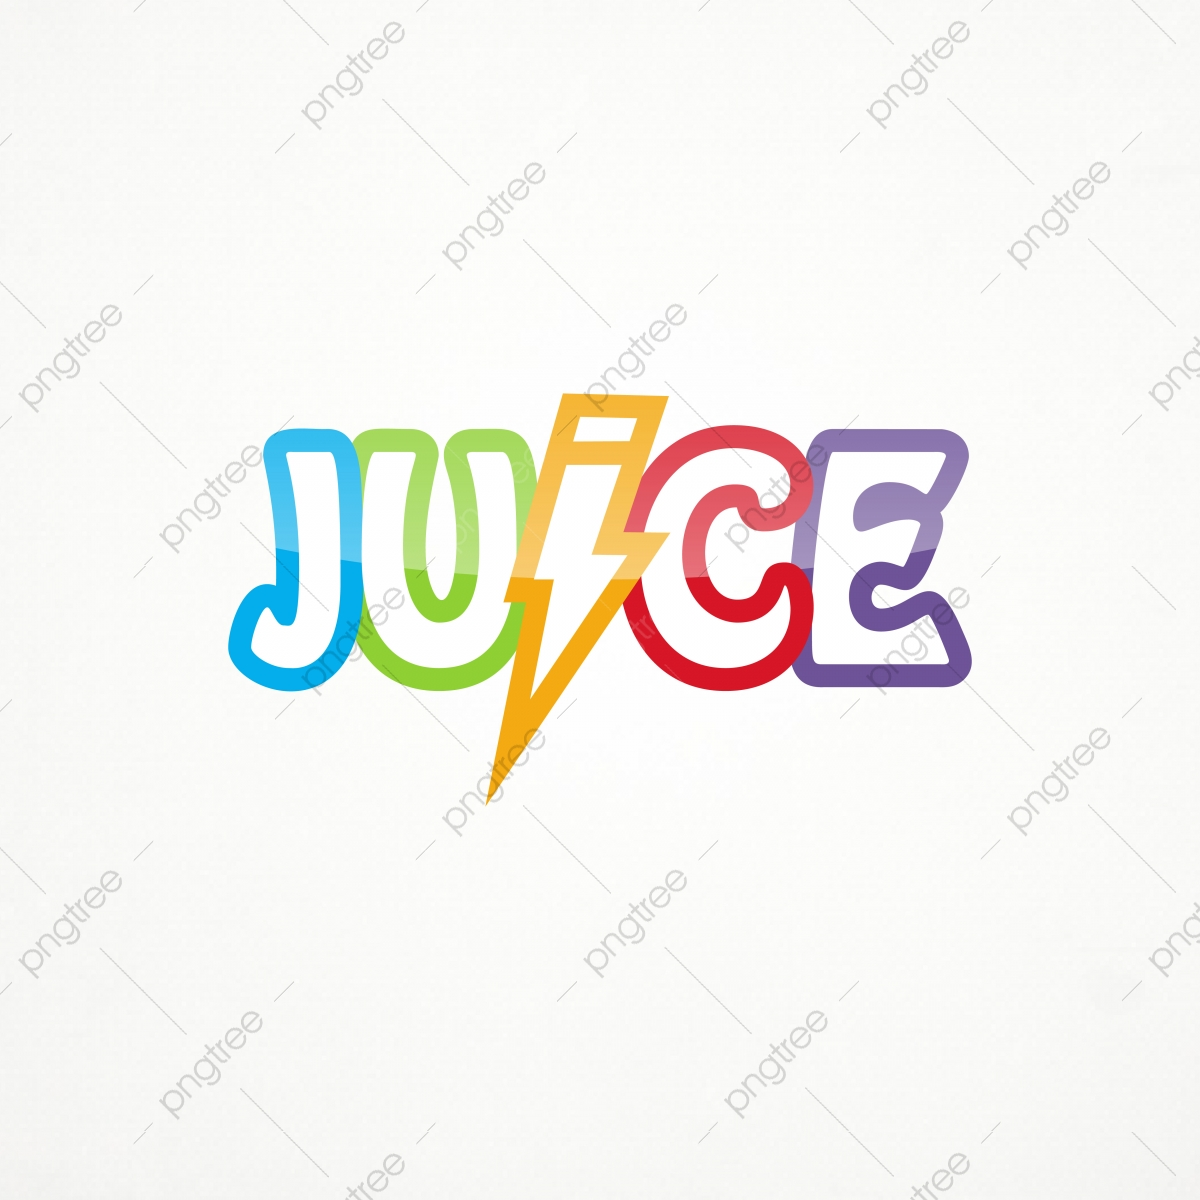 Juice Logo Design Awesome Inspiration Template For Free Download On Pngtree